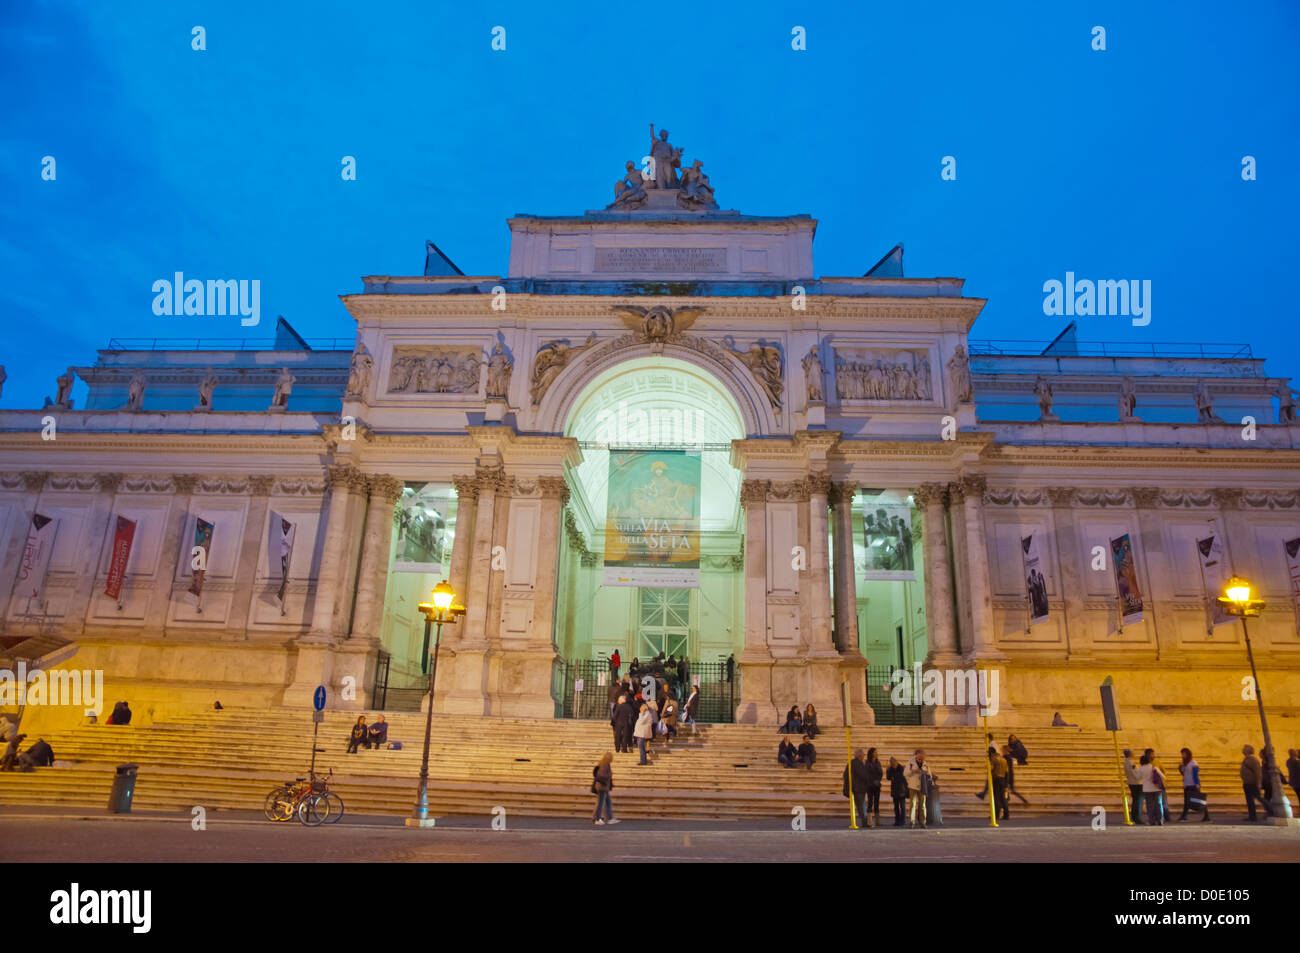 Nightlife rome stock photos nightlife rome stock images for Palazzo delle esposizioni rome italy